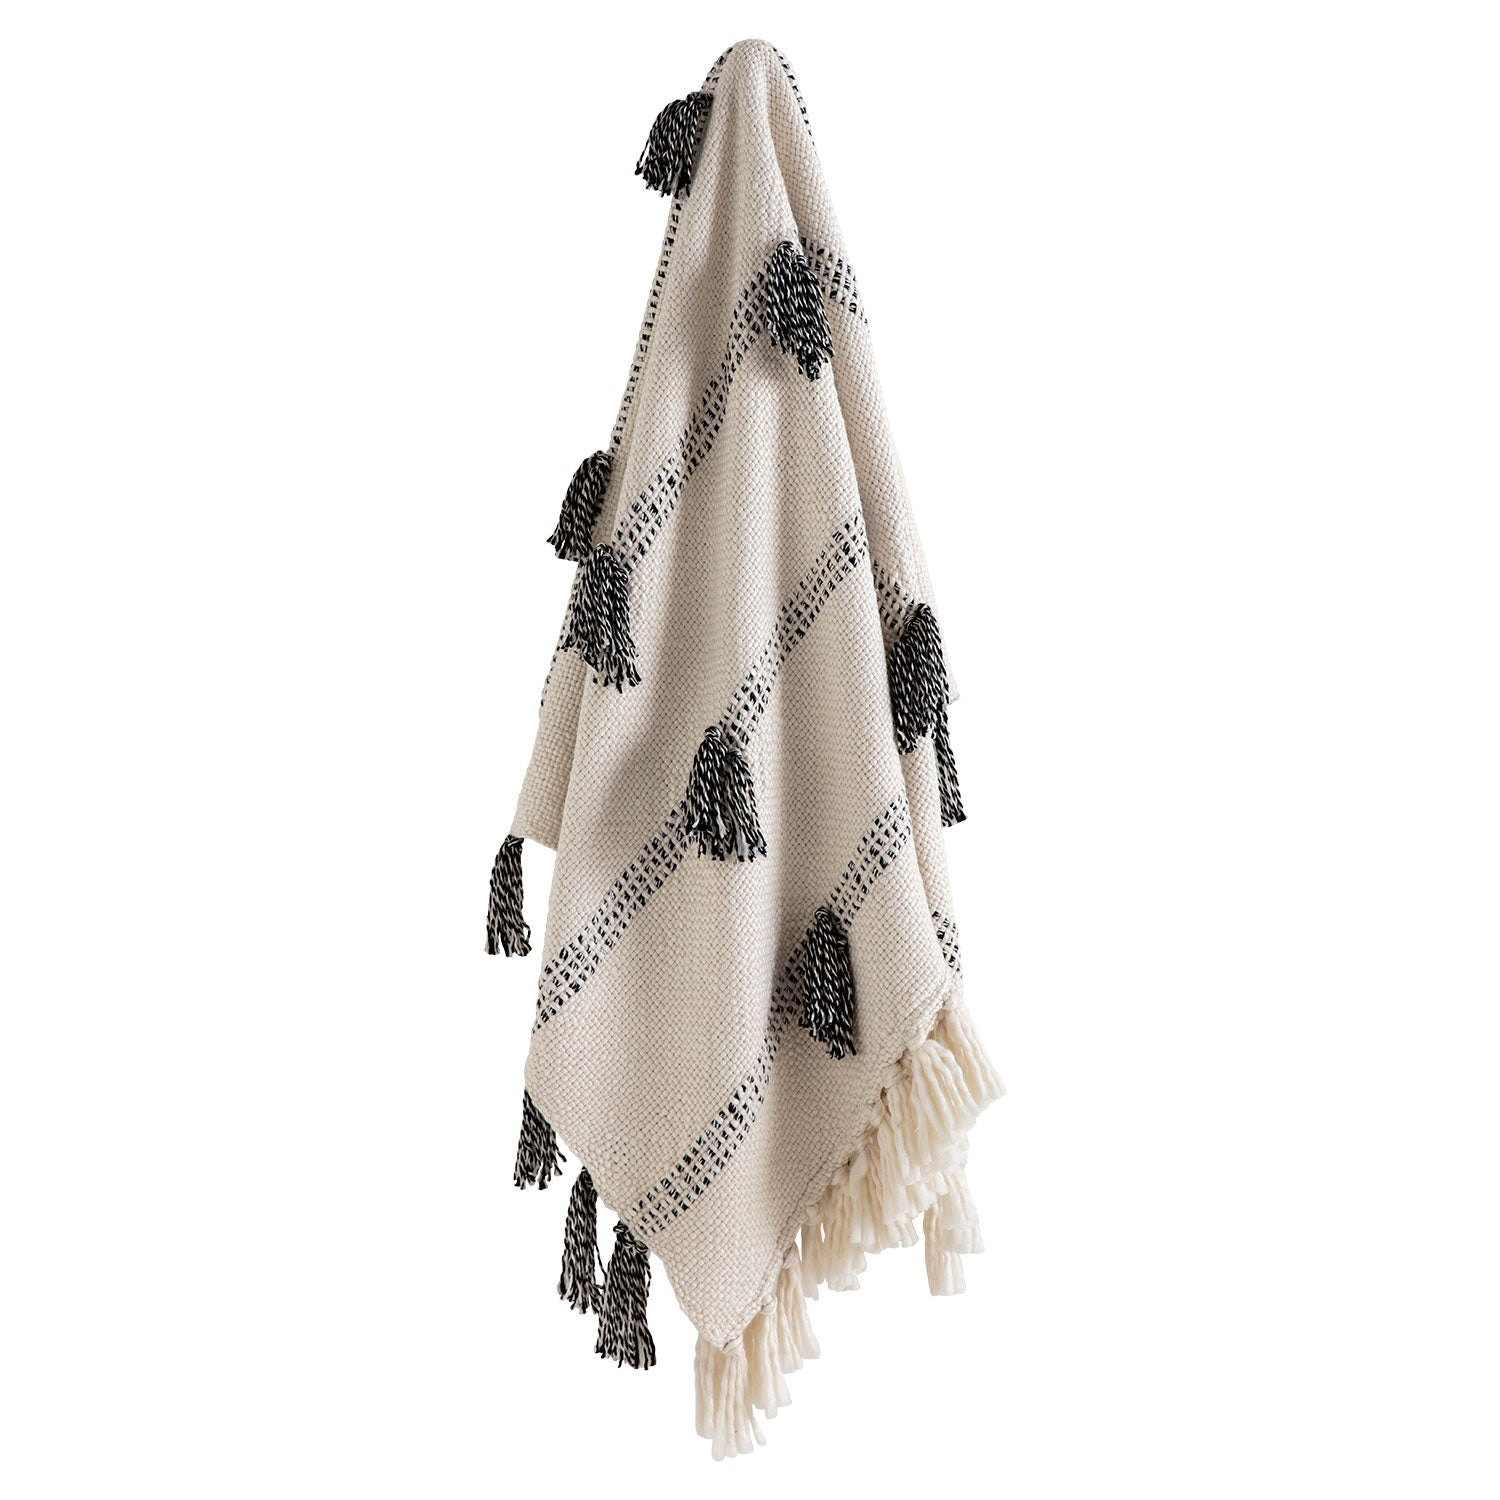 Black and White textured throw